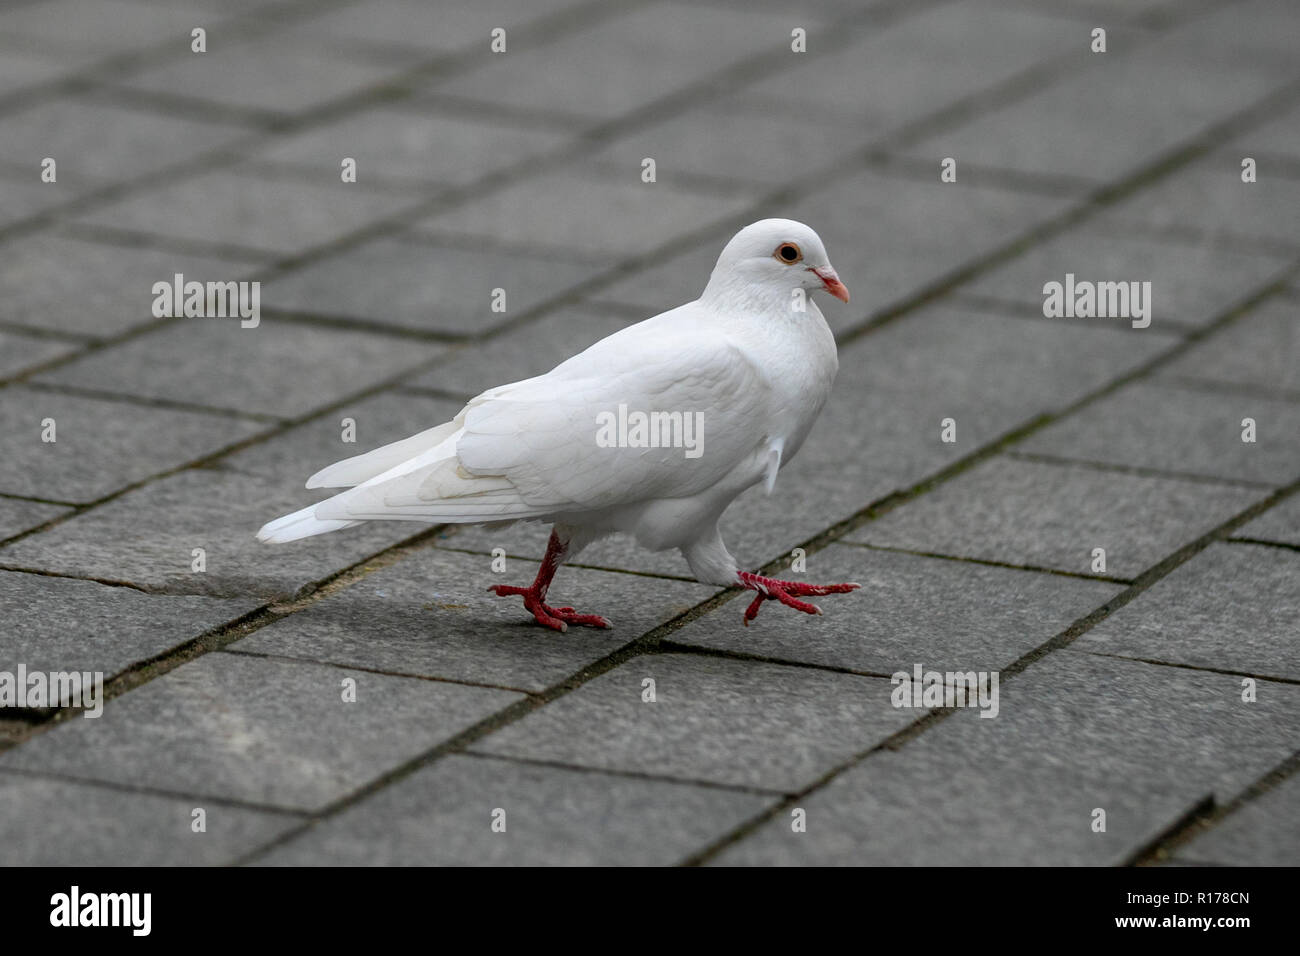 White Pigeon in Blackpool, UK Stock Photo: 224509733 - Alamy